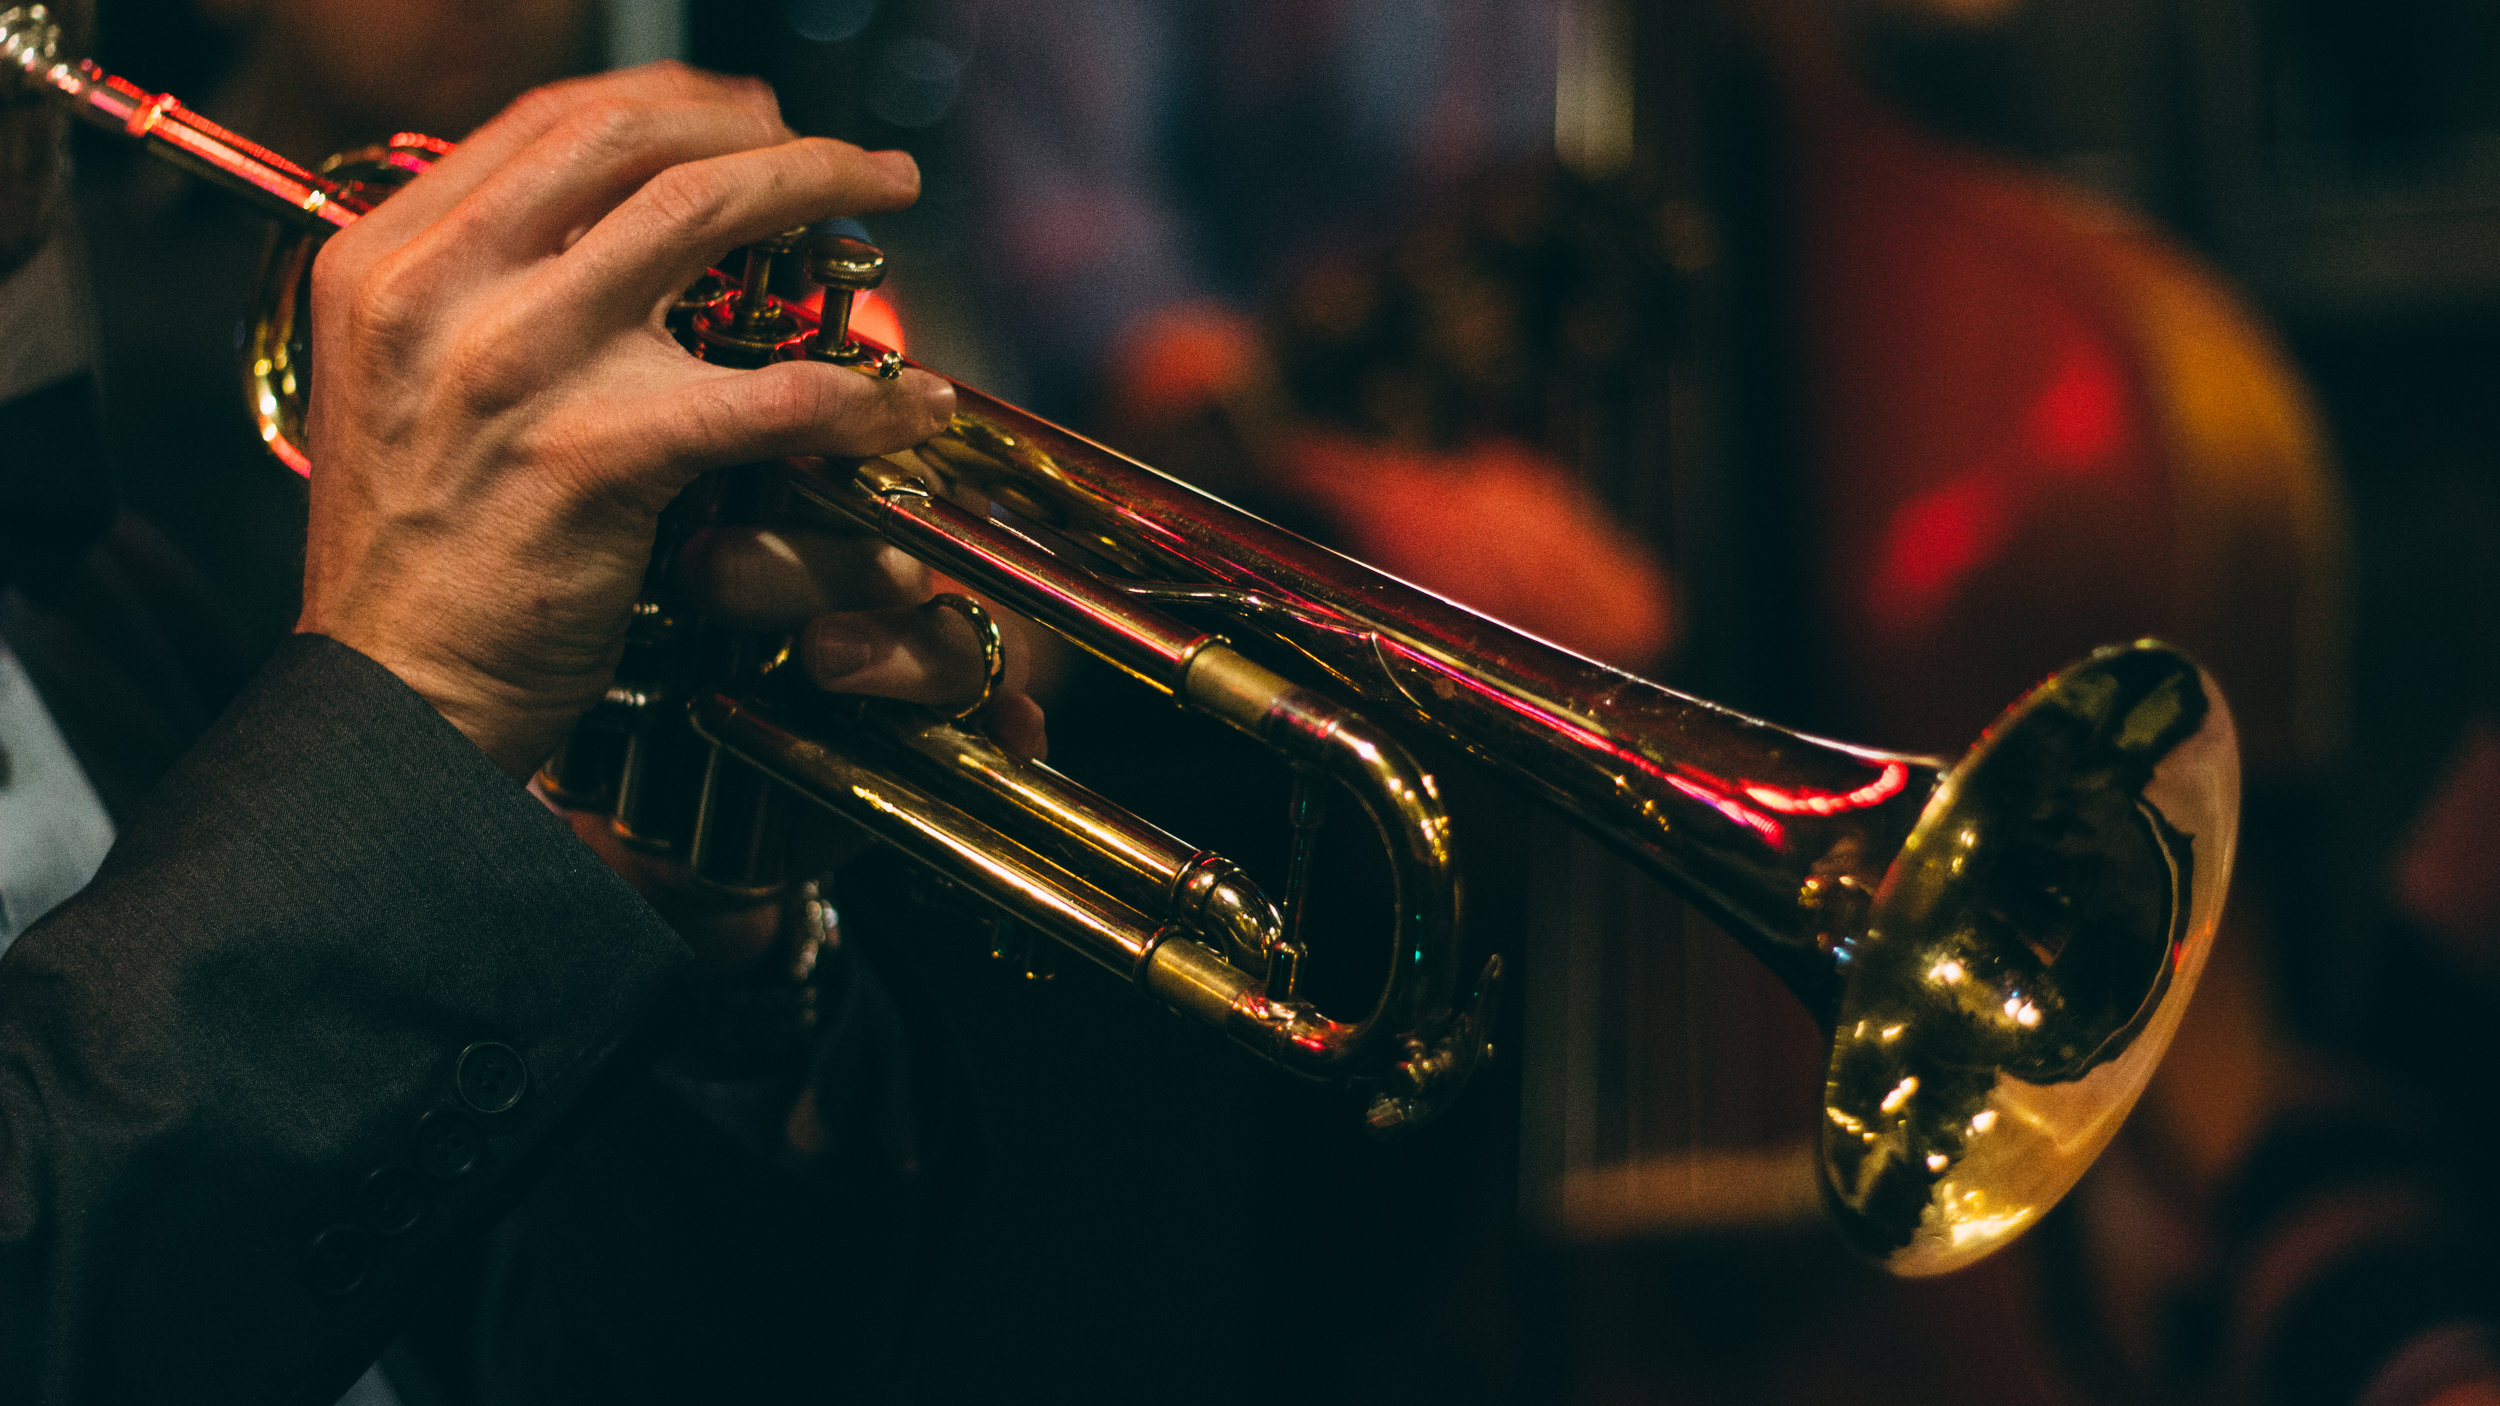 The Syd Lawrence Orchestra is Britain's favourite Big Band - performing Swing music and Dance Classics